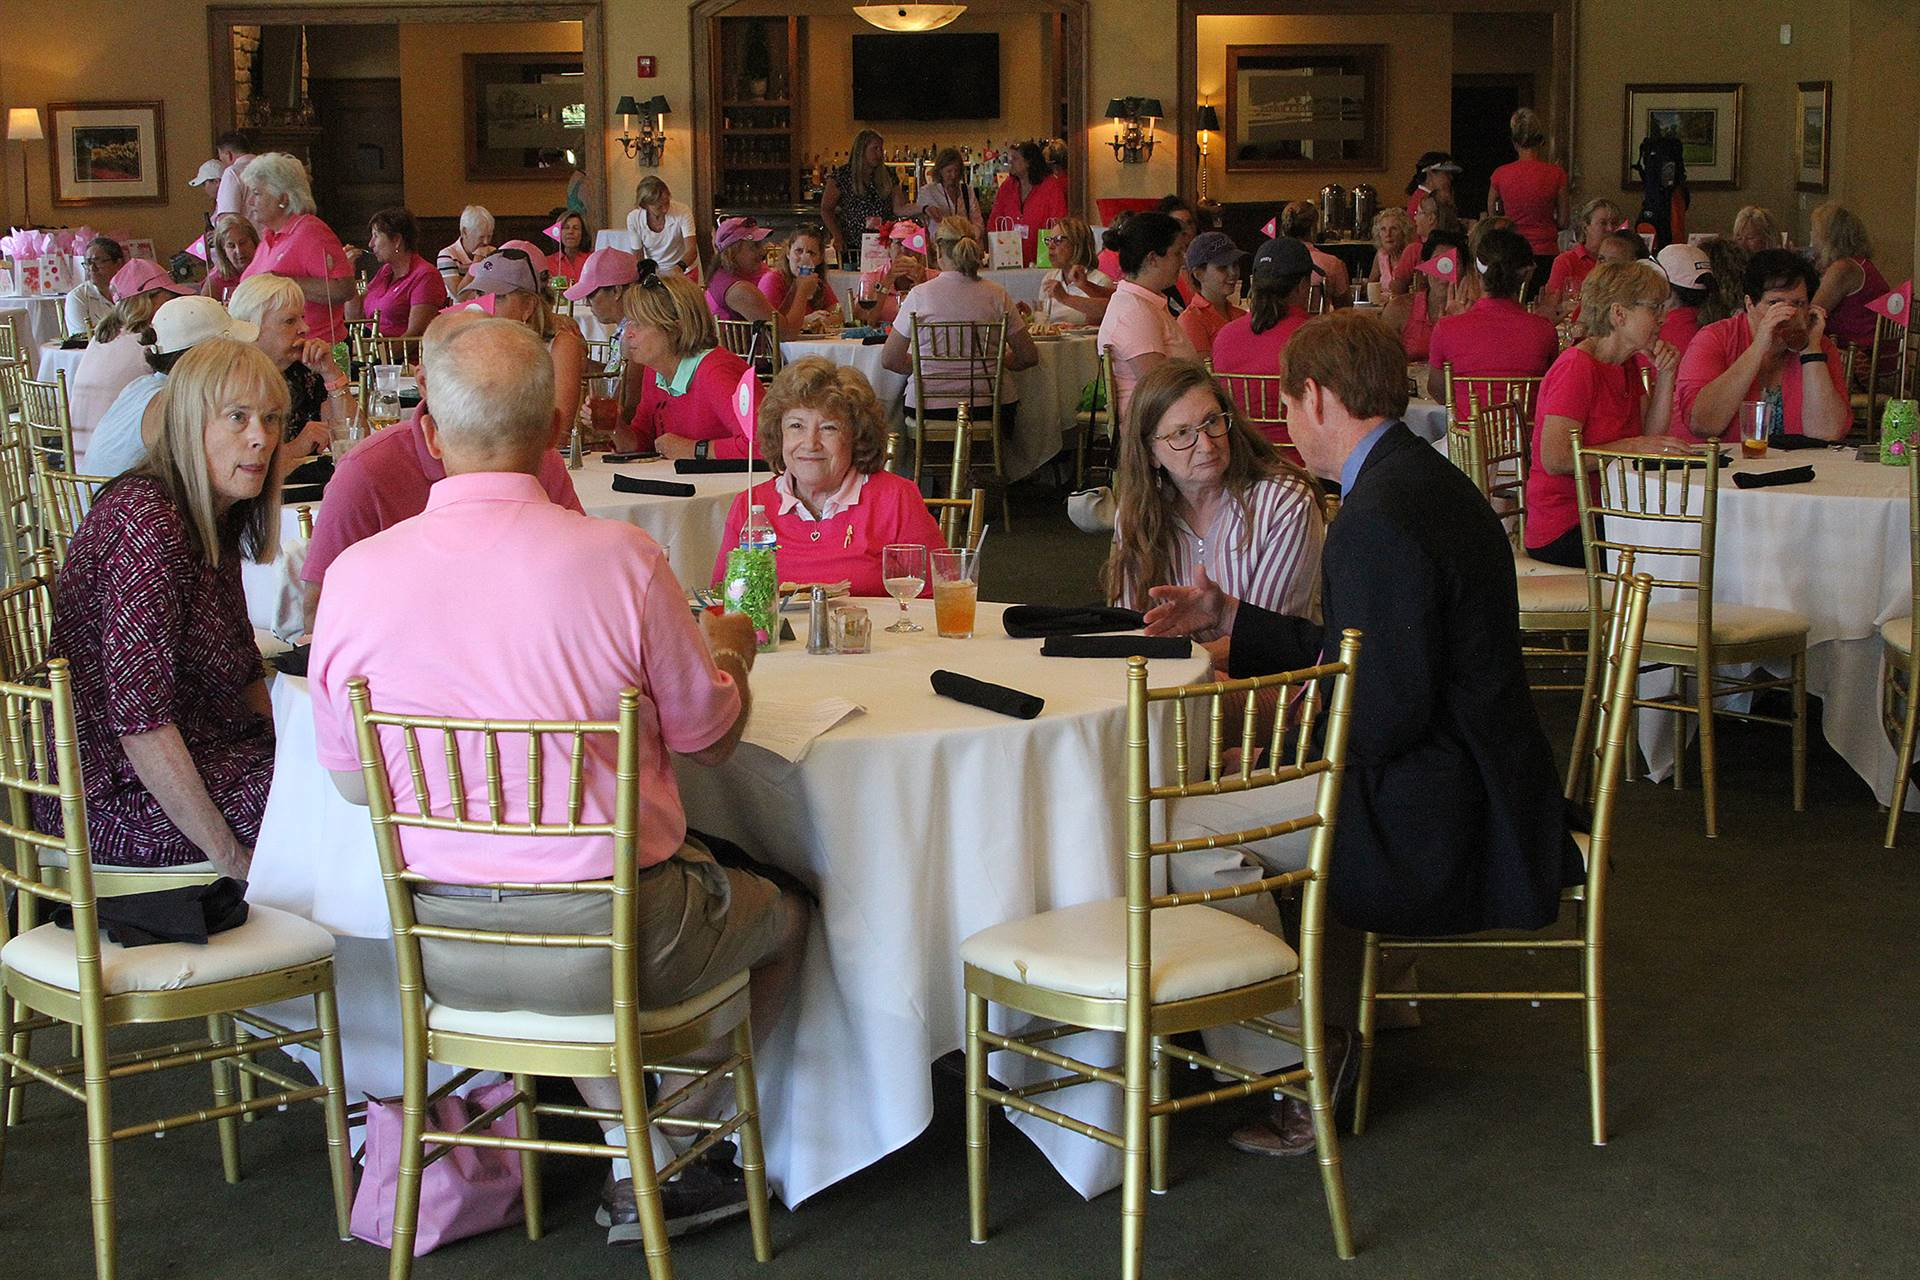 Attendees enjoying the luncheon